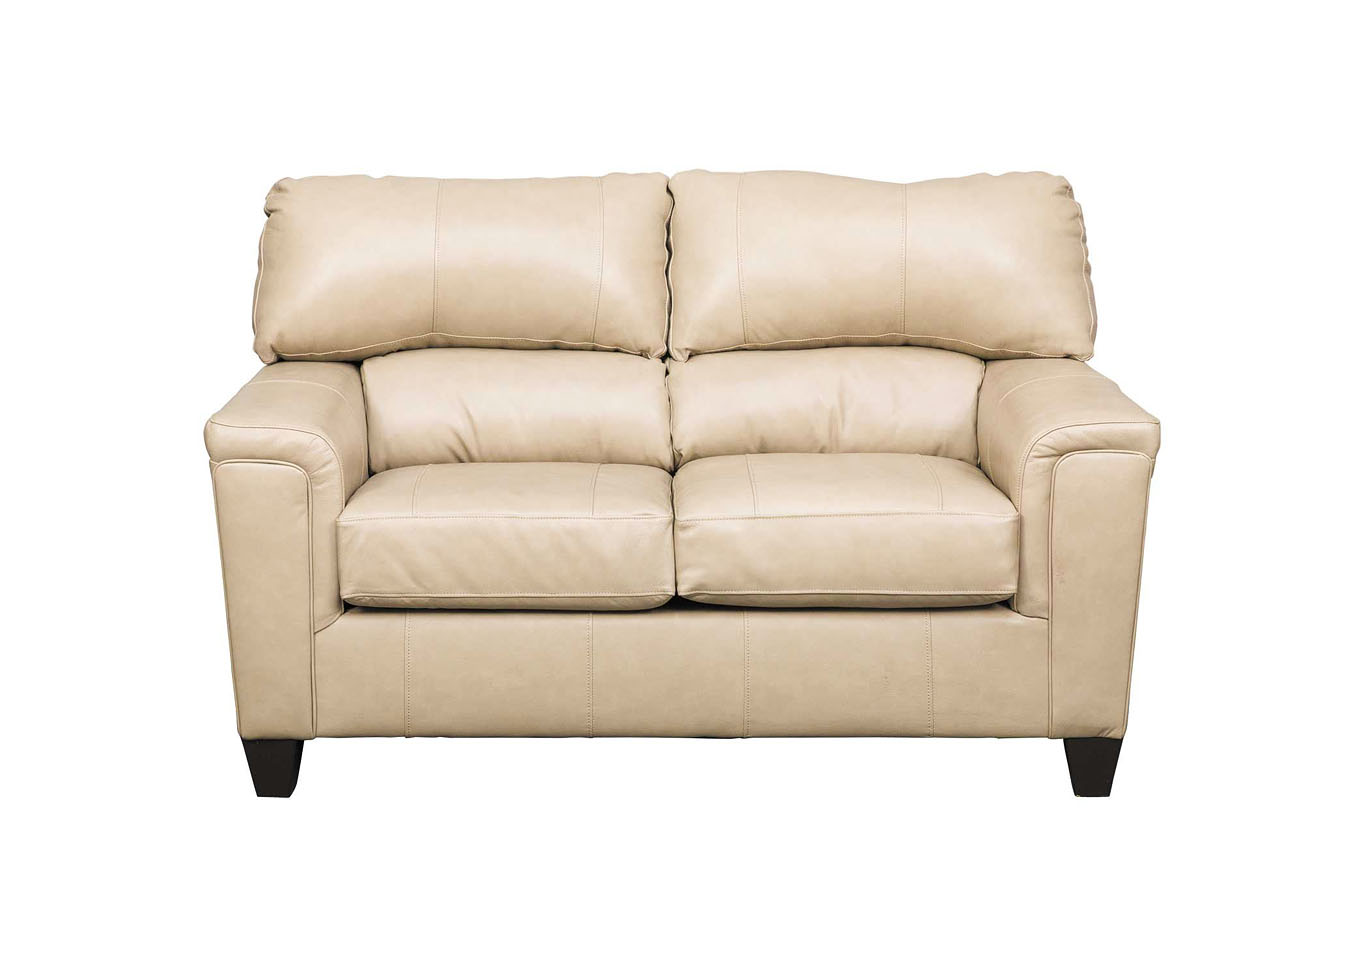 Lane Furniture  Kennedy Top Grain Leather / Mate Love Seat Putty,Instore